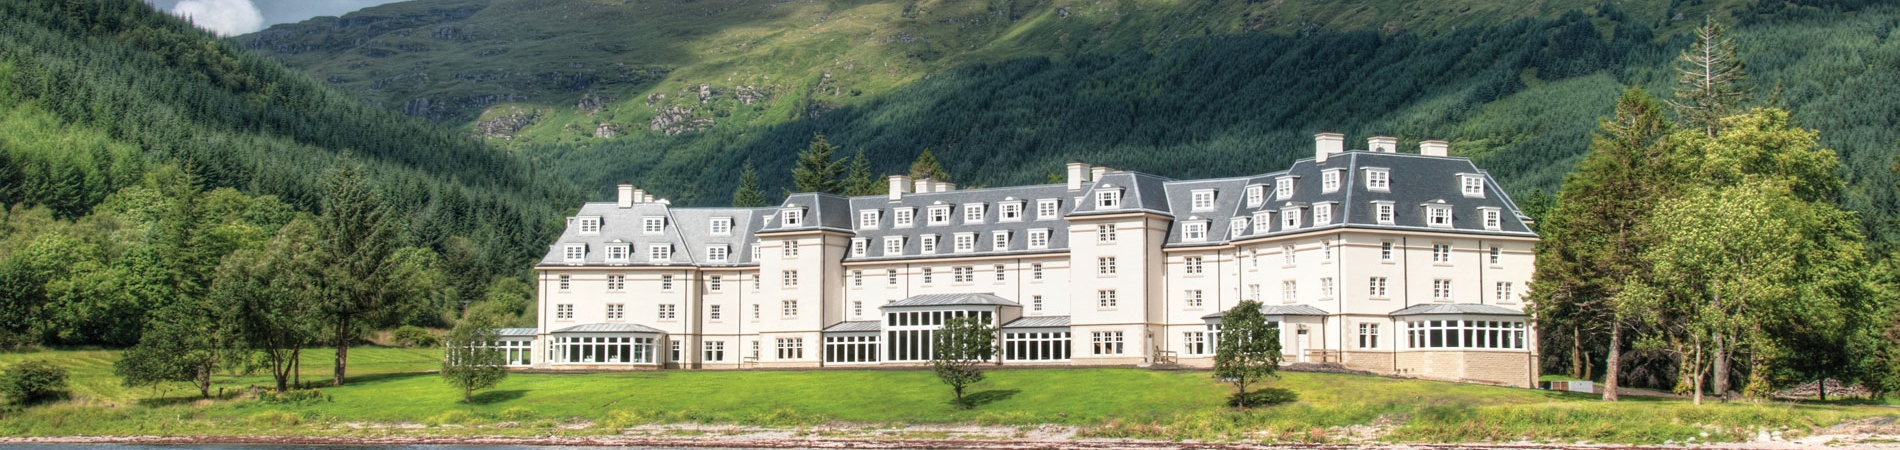 Ardgartan Hotel overlooked by the Arrochar Alps. Another gorgeous Lochs & Glens hotel